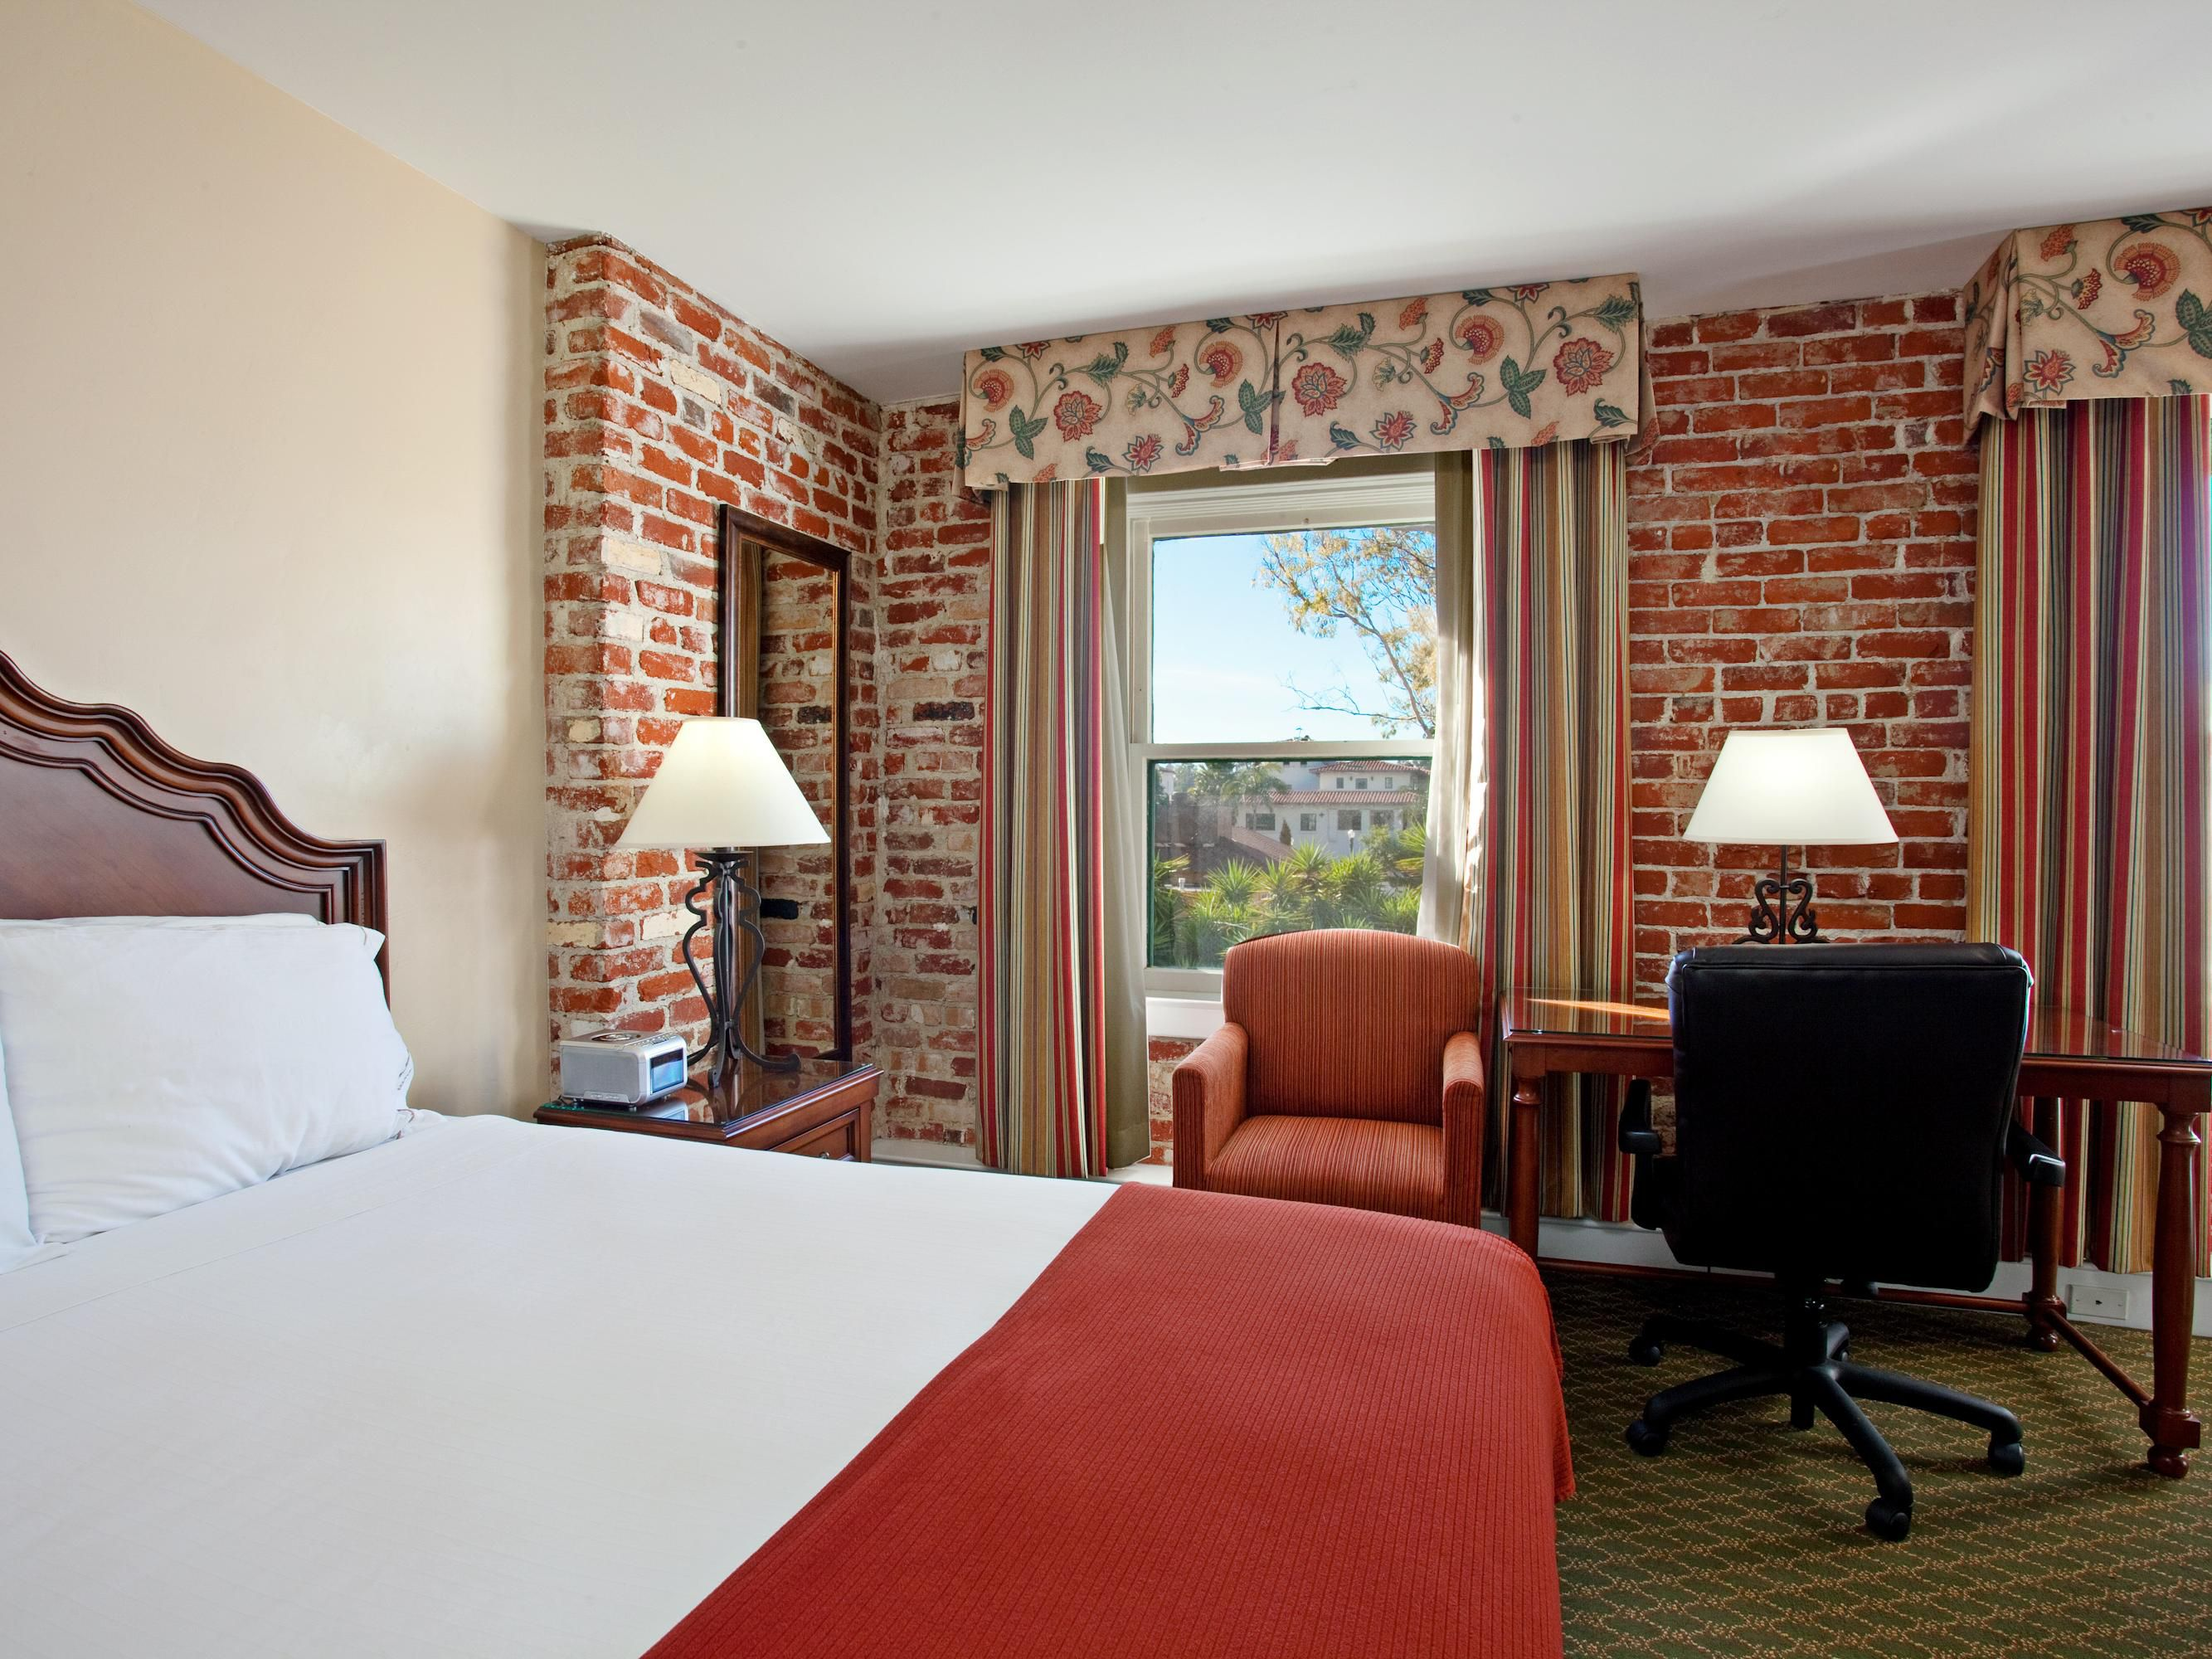 Queen Bed Guest Room with Original Brick Walls